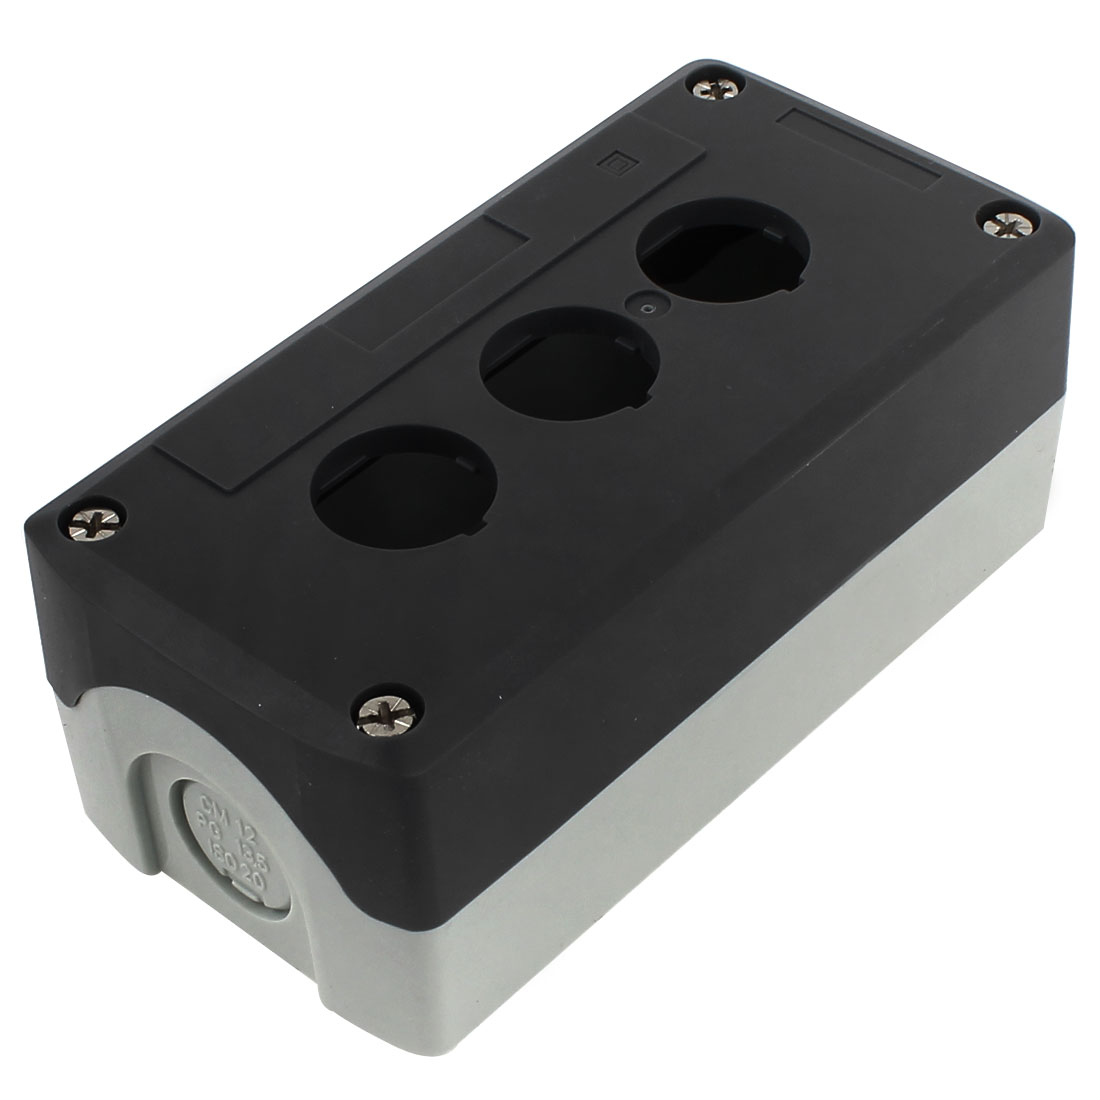 137mm x 68mm x 50mm Waterproof Plastic 3 Button Hole Junction Box Case